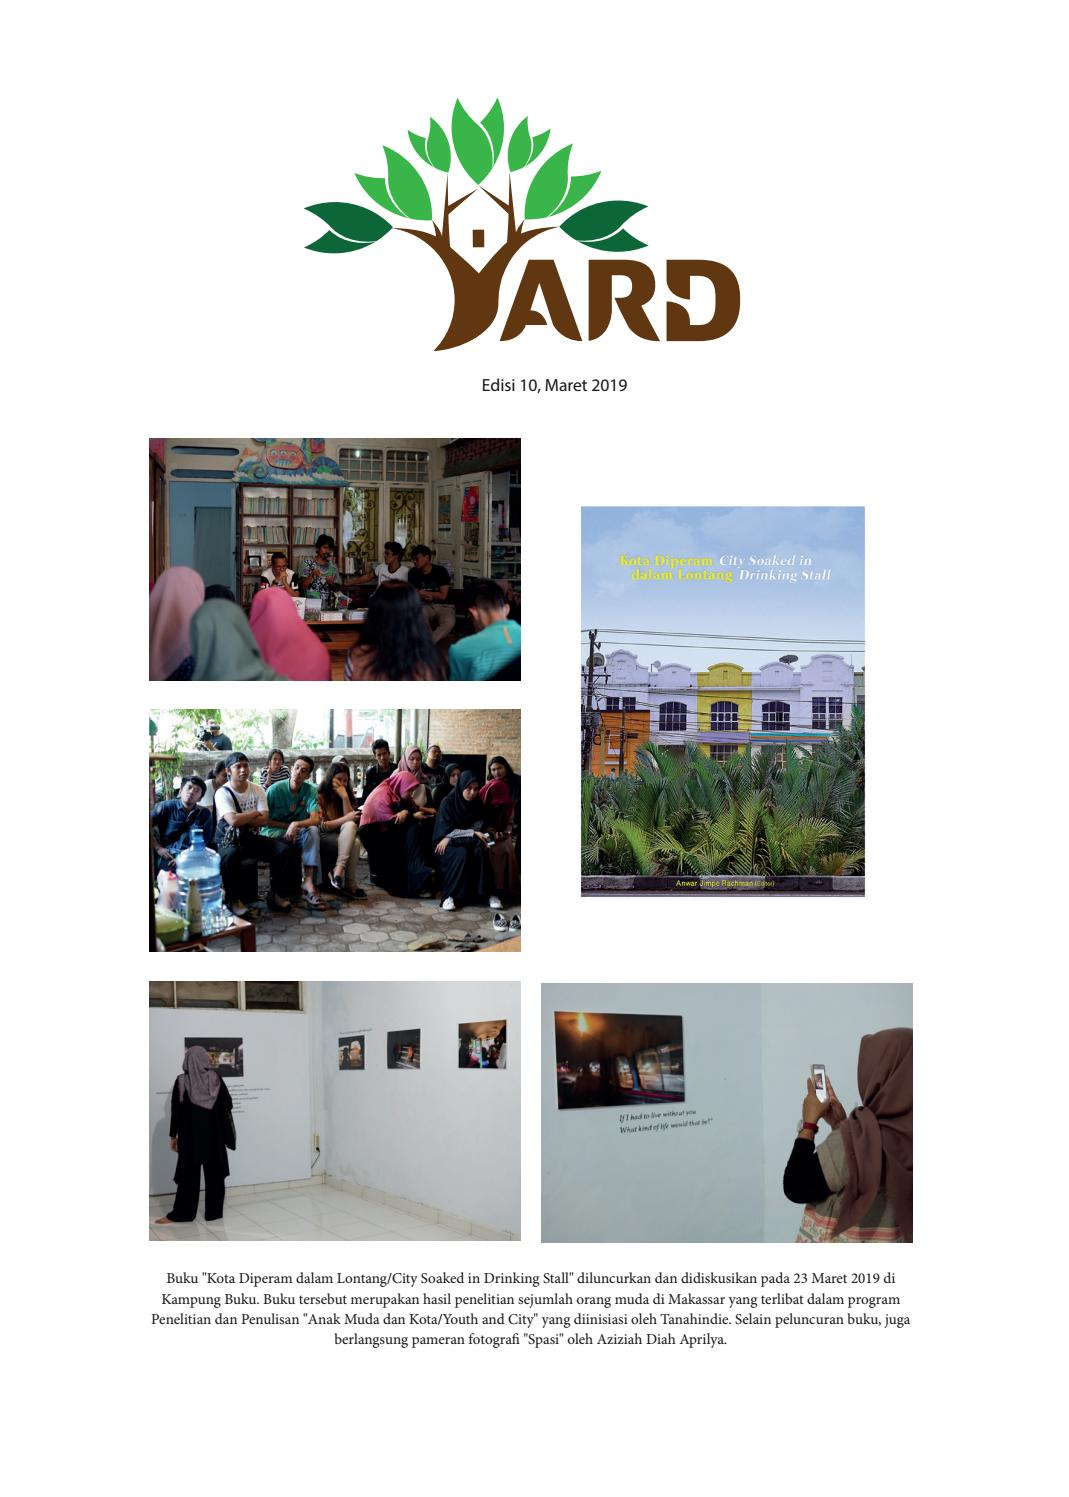 YARD Edisi 10 Maret 2019 Tenth Edition March 2019 By